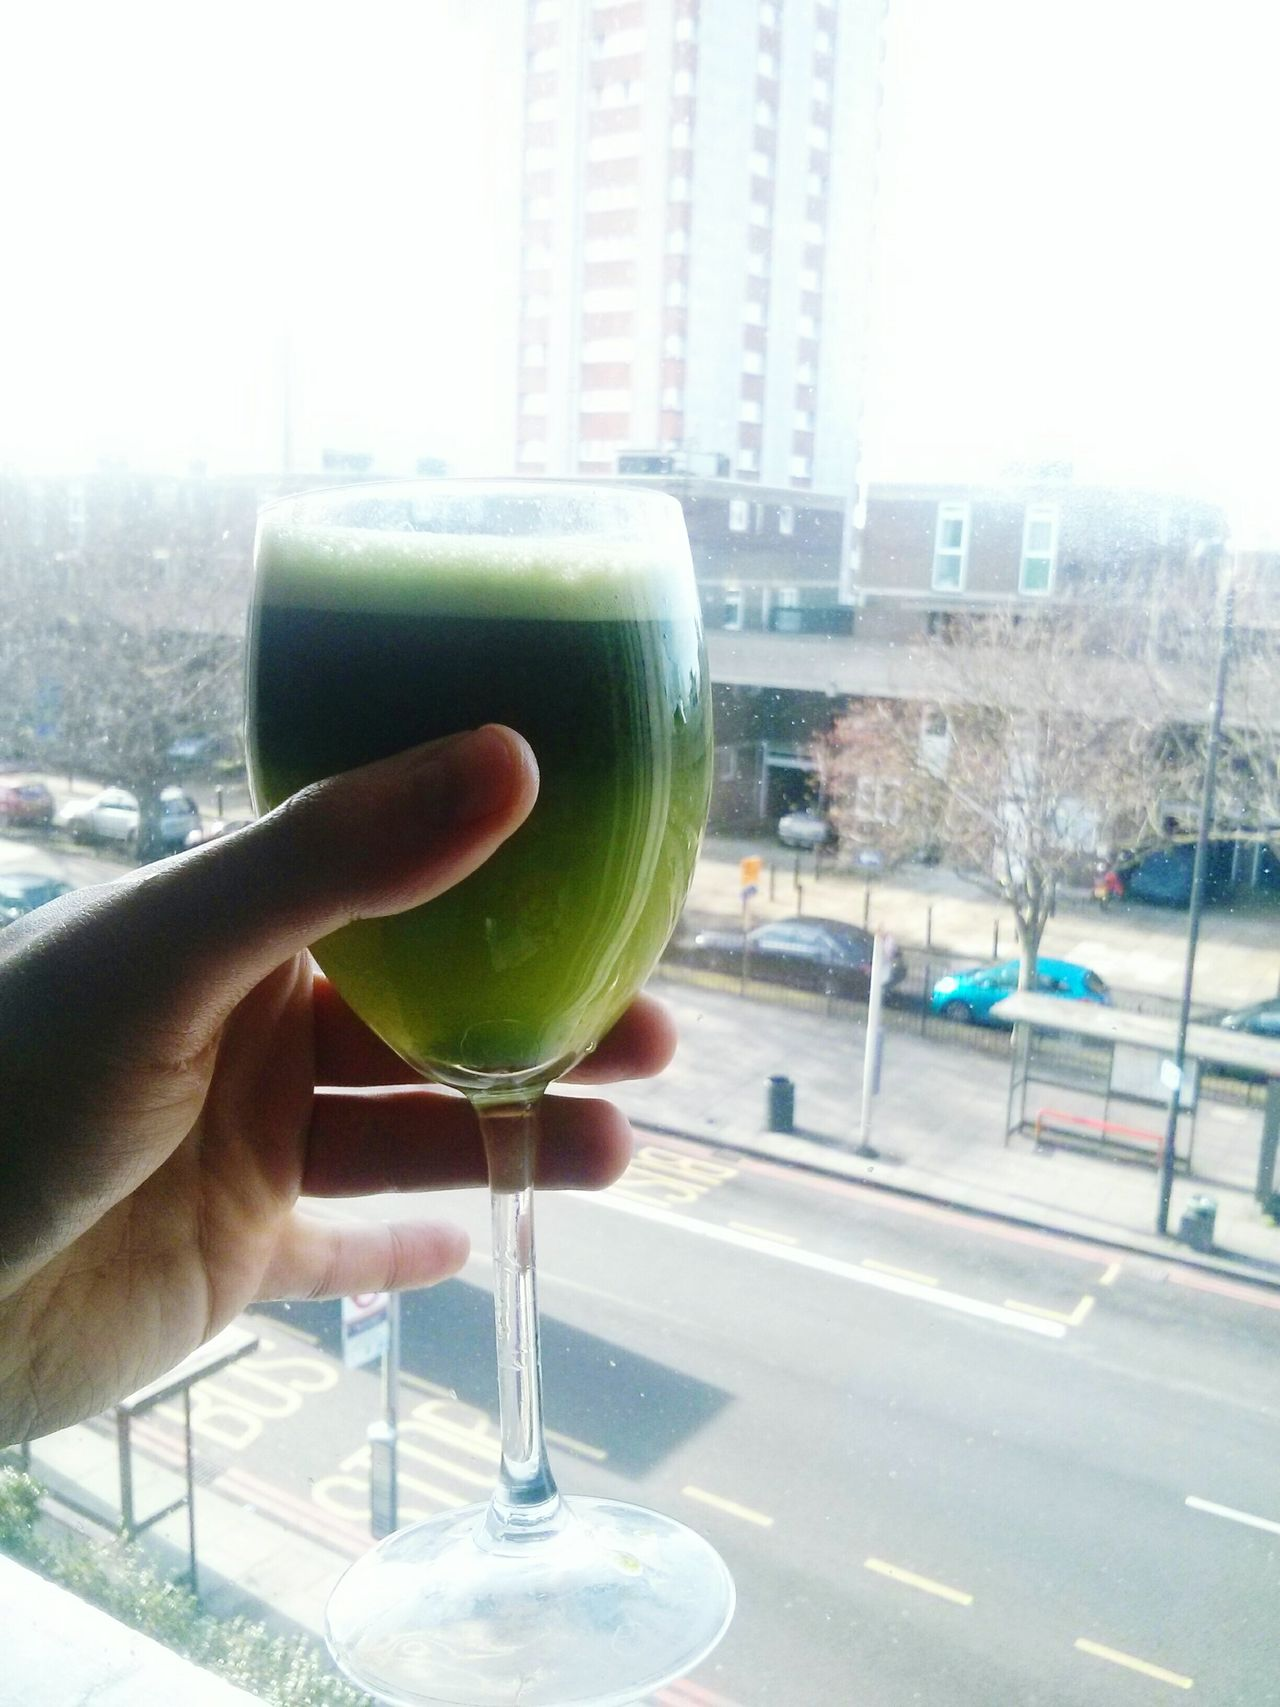 Colors Of Carnival Green Juice Detox Urban Landscape Healthy Energise Smoothie Skyscraper